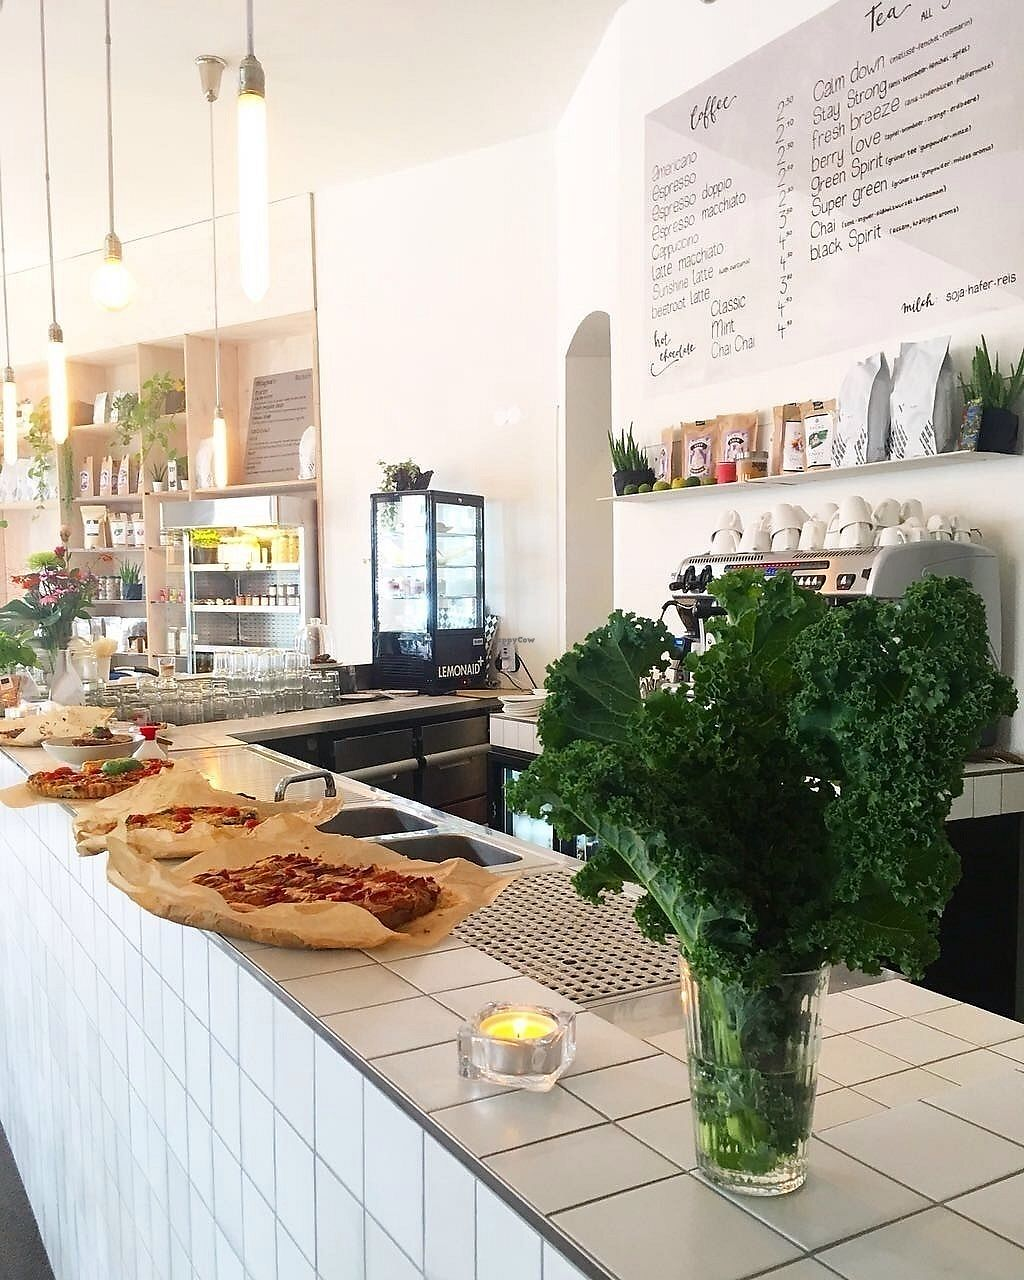 """Photo of Manafood  by <a href=""""/members/profile/SergejLubic"""">SergejLubic</a> <br/>Kale at the bar. Coffee is perfect! <br/> October 8, 2017  - <a href='/contact/abuse/image/102480/313218'>Report</a>"""